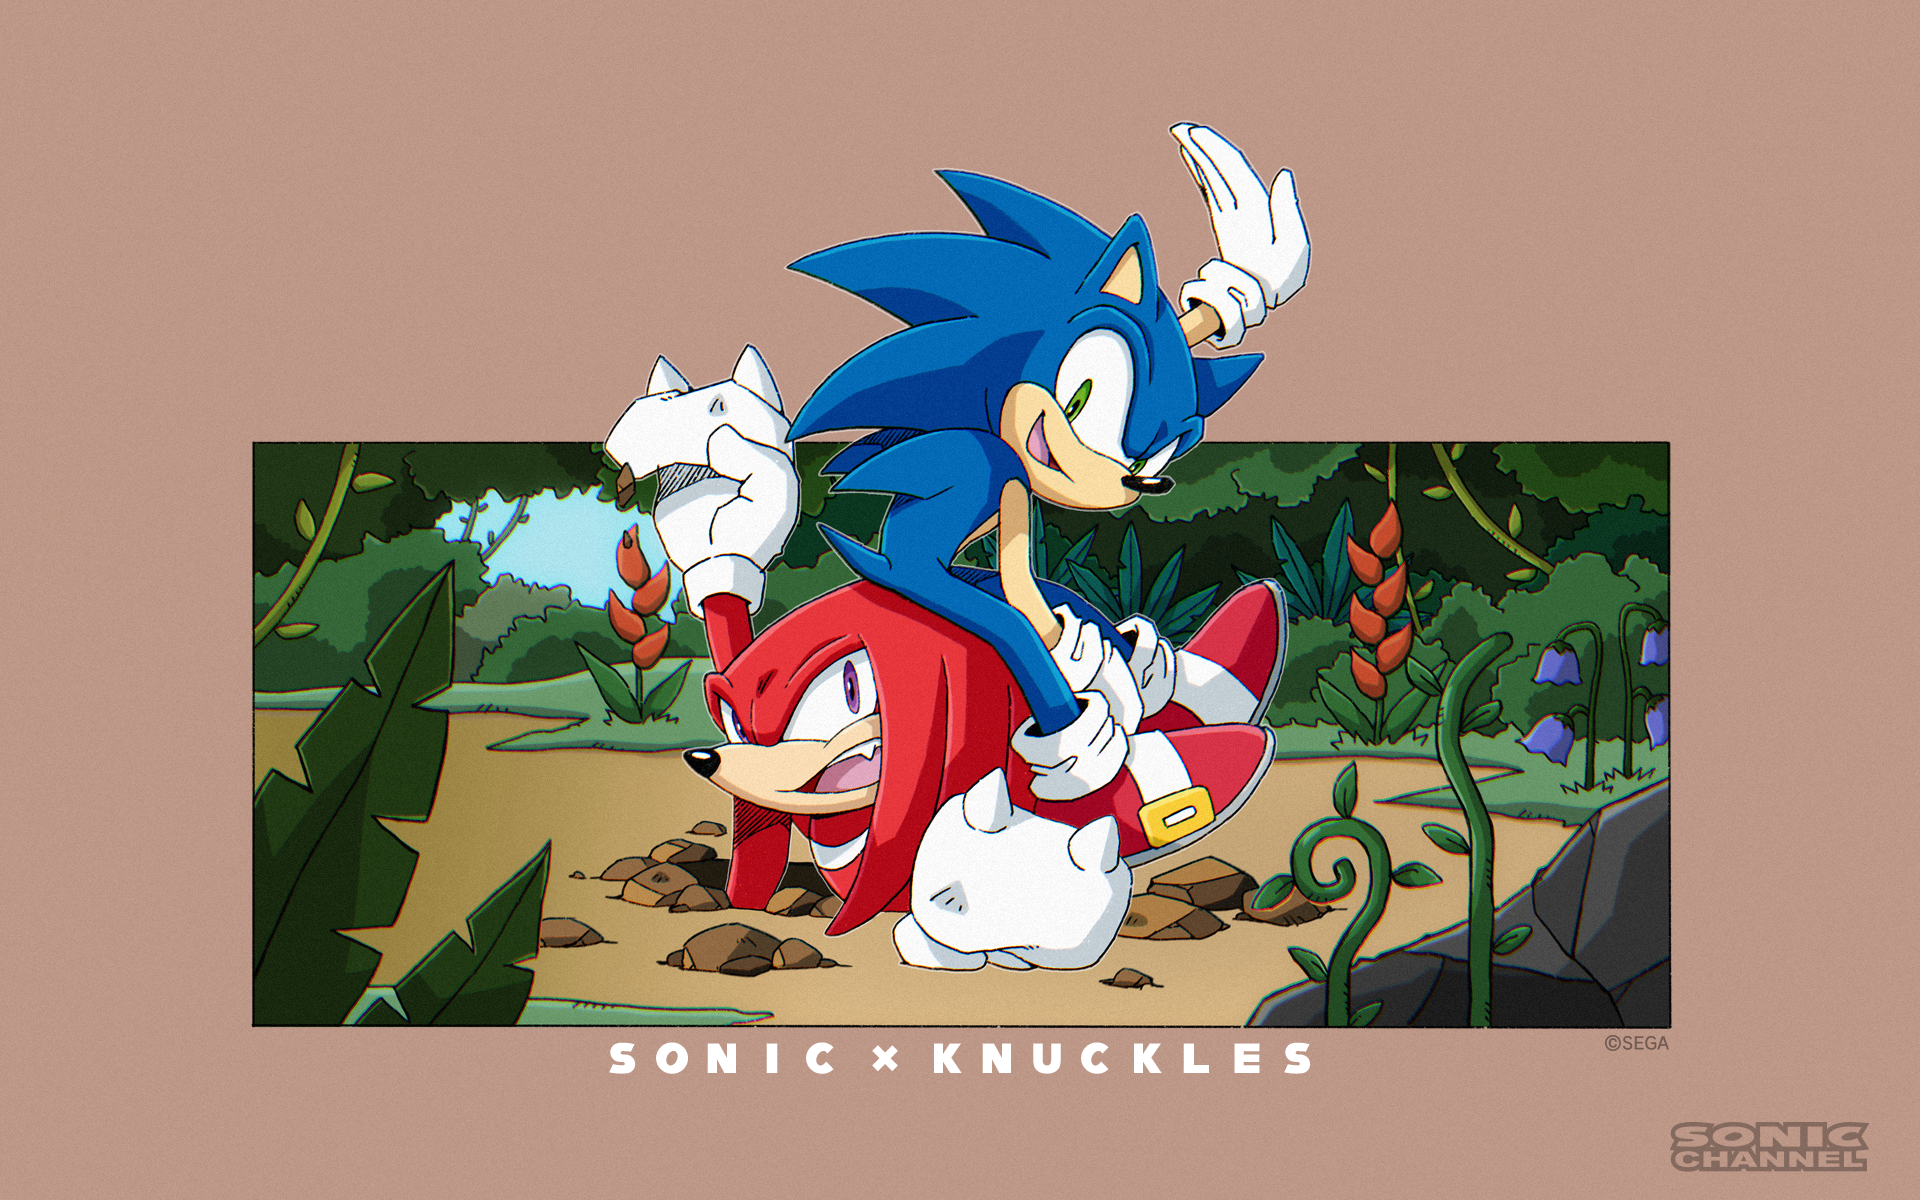 Sonic i Knuckles